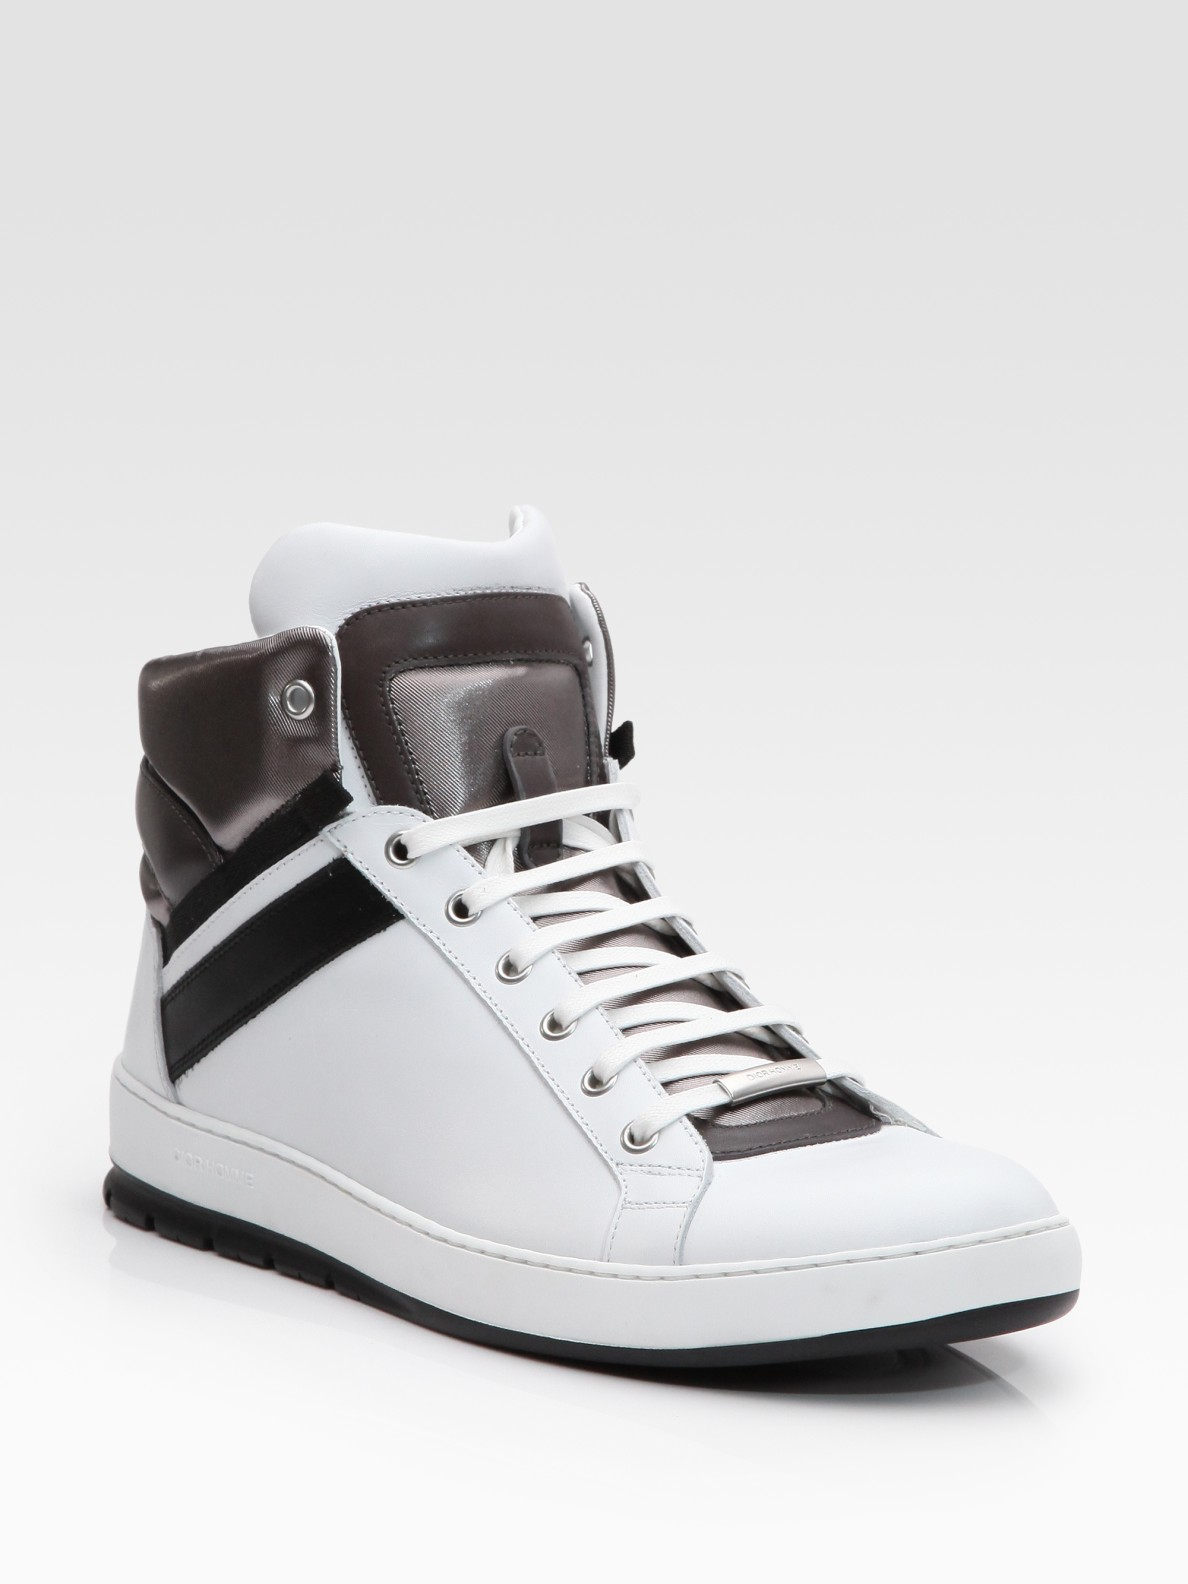 Dior Homme High-top Sneakers in - 128.8KB